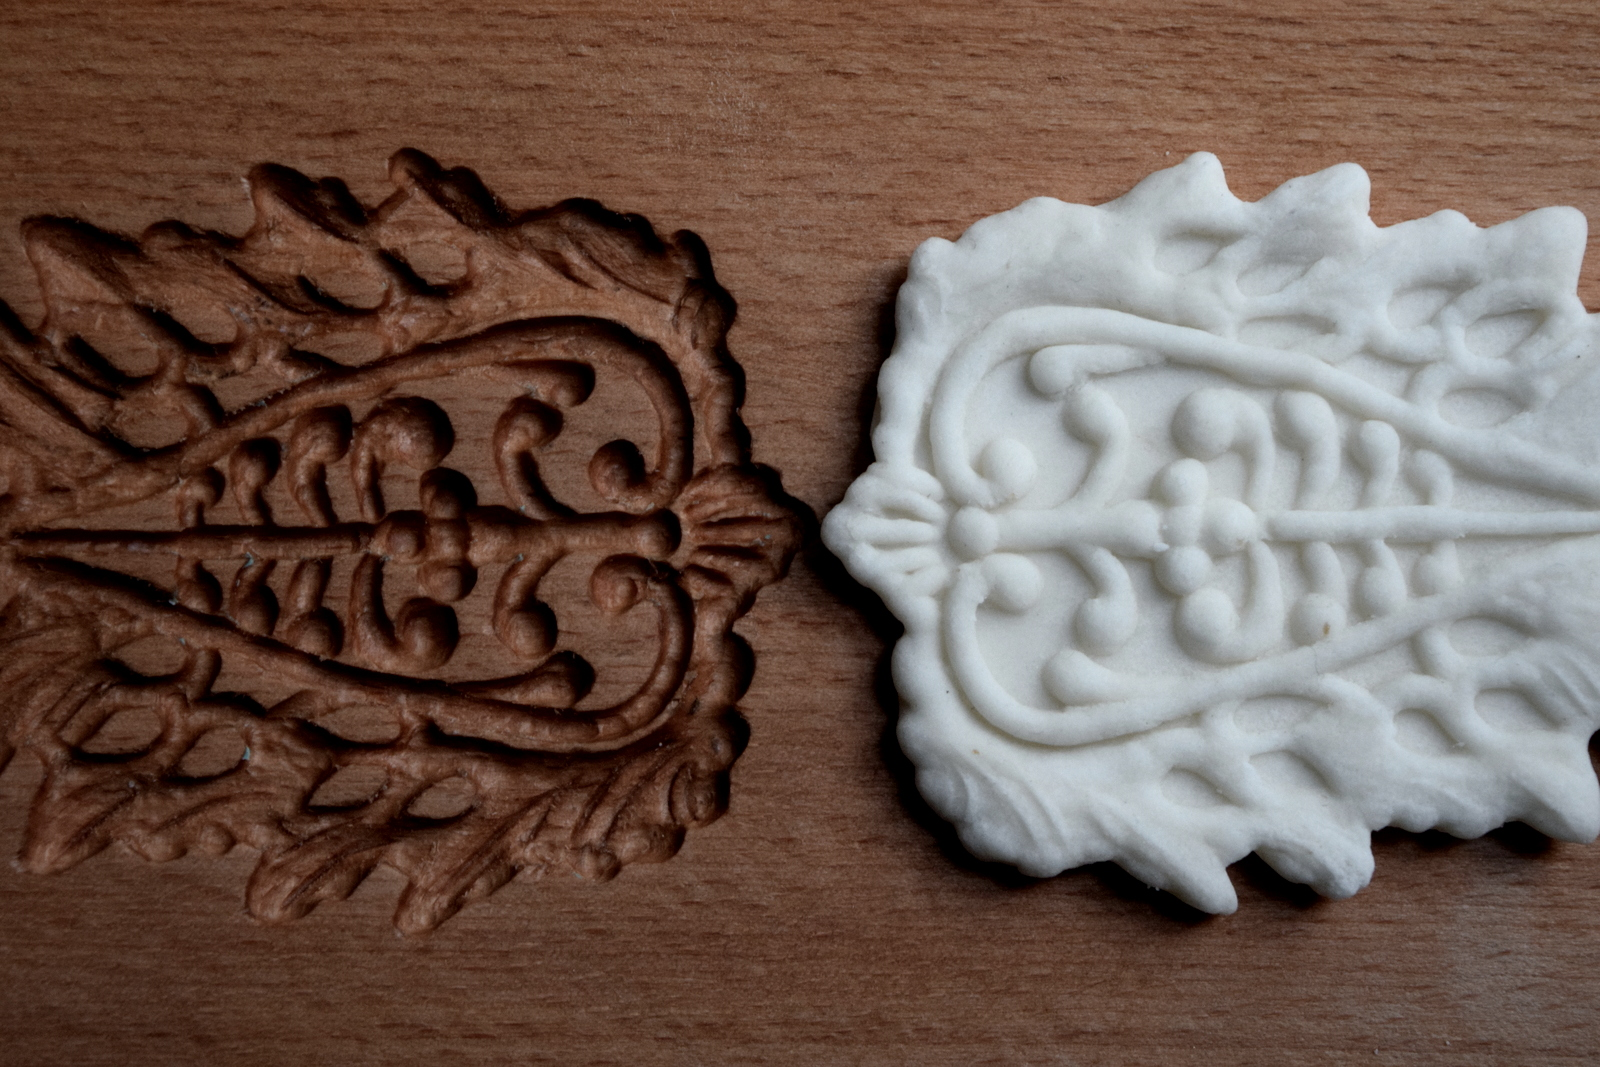 One of the 15  th  century style confectionary molds and castings used in the work – Photo: Tasha Marks